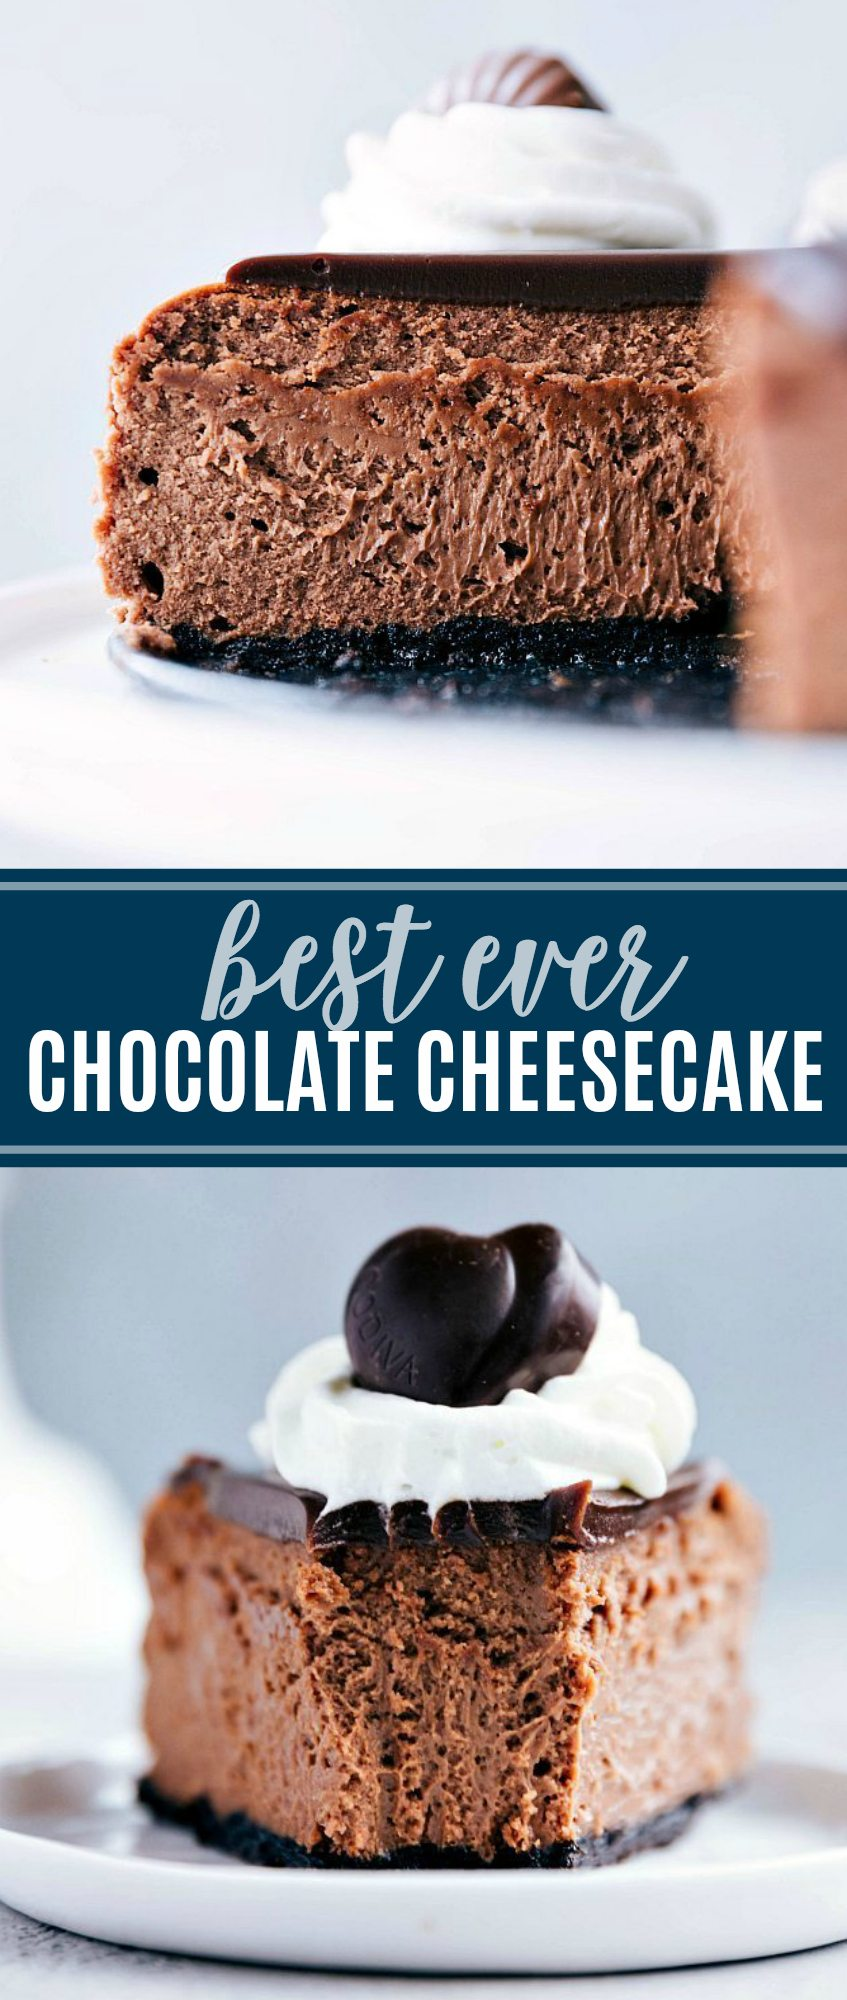 The ultimate best ever chocolate cheesecake with a chocolate-cookie base, smooth milk chocolate interior, an easy chocolate ganache | chelseasmessyapron.com | #chocolate #cheesecake #dessert #tips #tricks #baking #holiday #treat